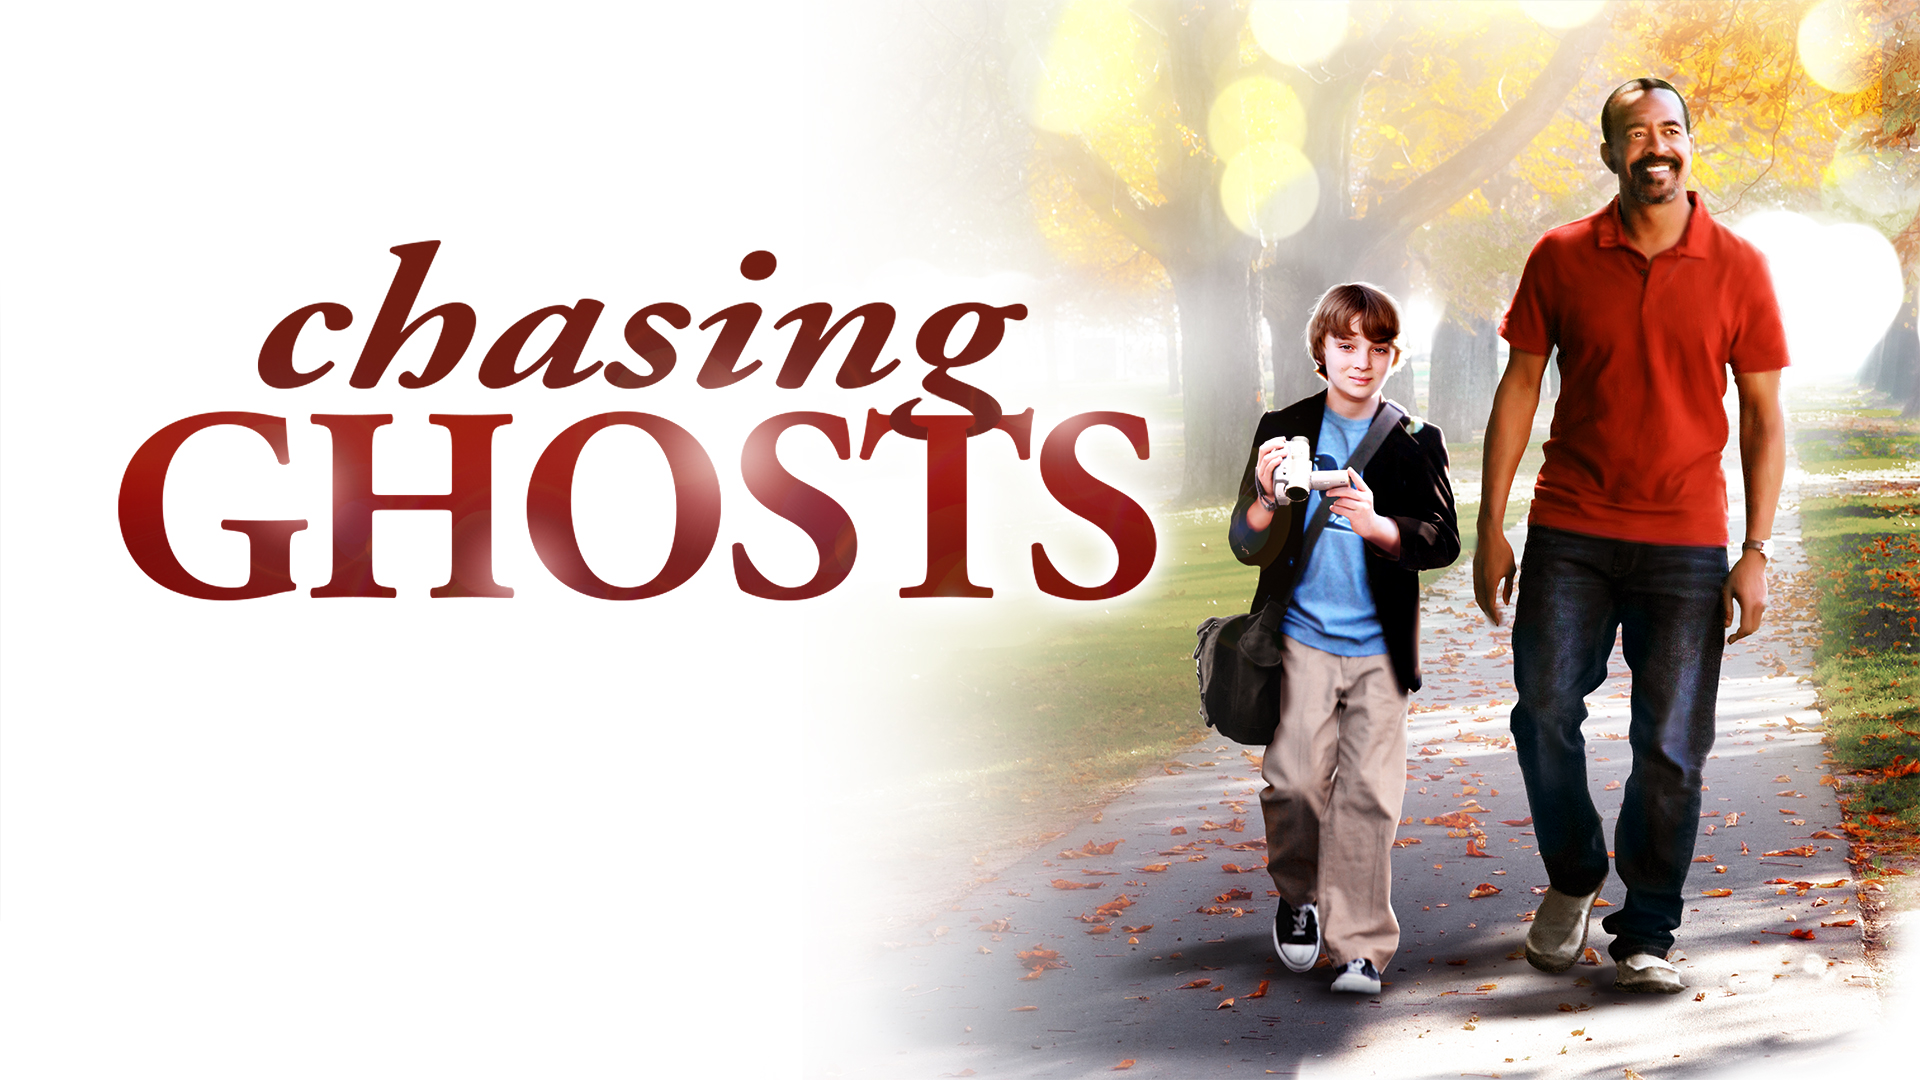 chasing-ghosts